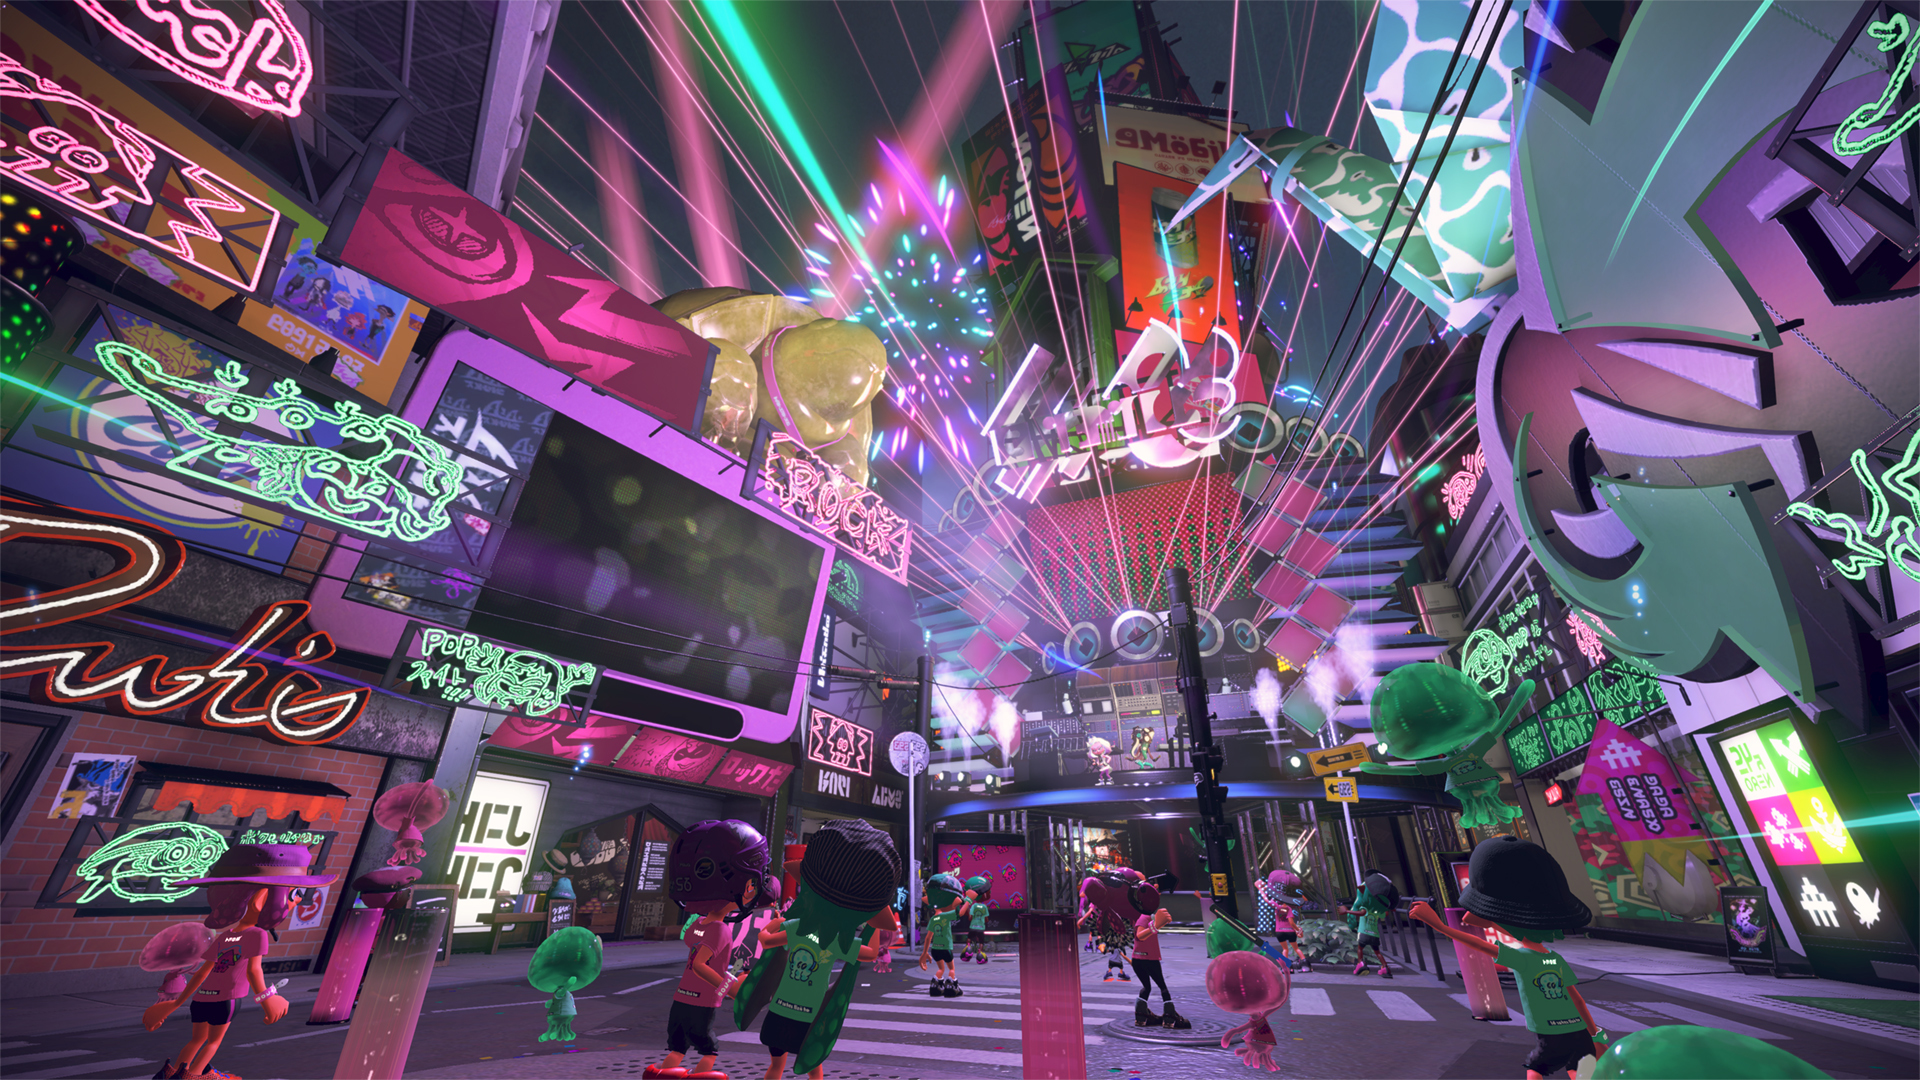 While content updates for Splatoon 2 will last around a year, more limited-time Splatfests for the game are planned for the next two years. To kick things off, a free demo to try out the first Splatfest for Splatoon 2 is going to be held on July 15 from 3 to 7 p.m. PT. (Photo: Business Wire)